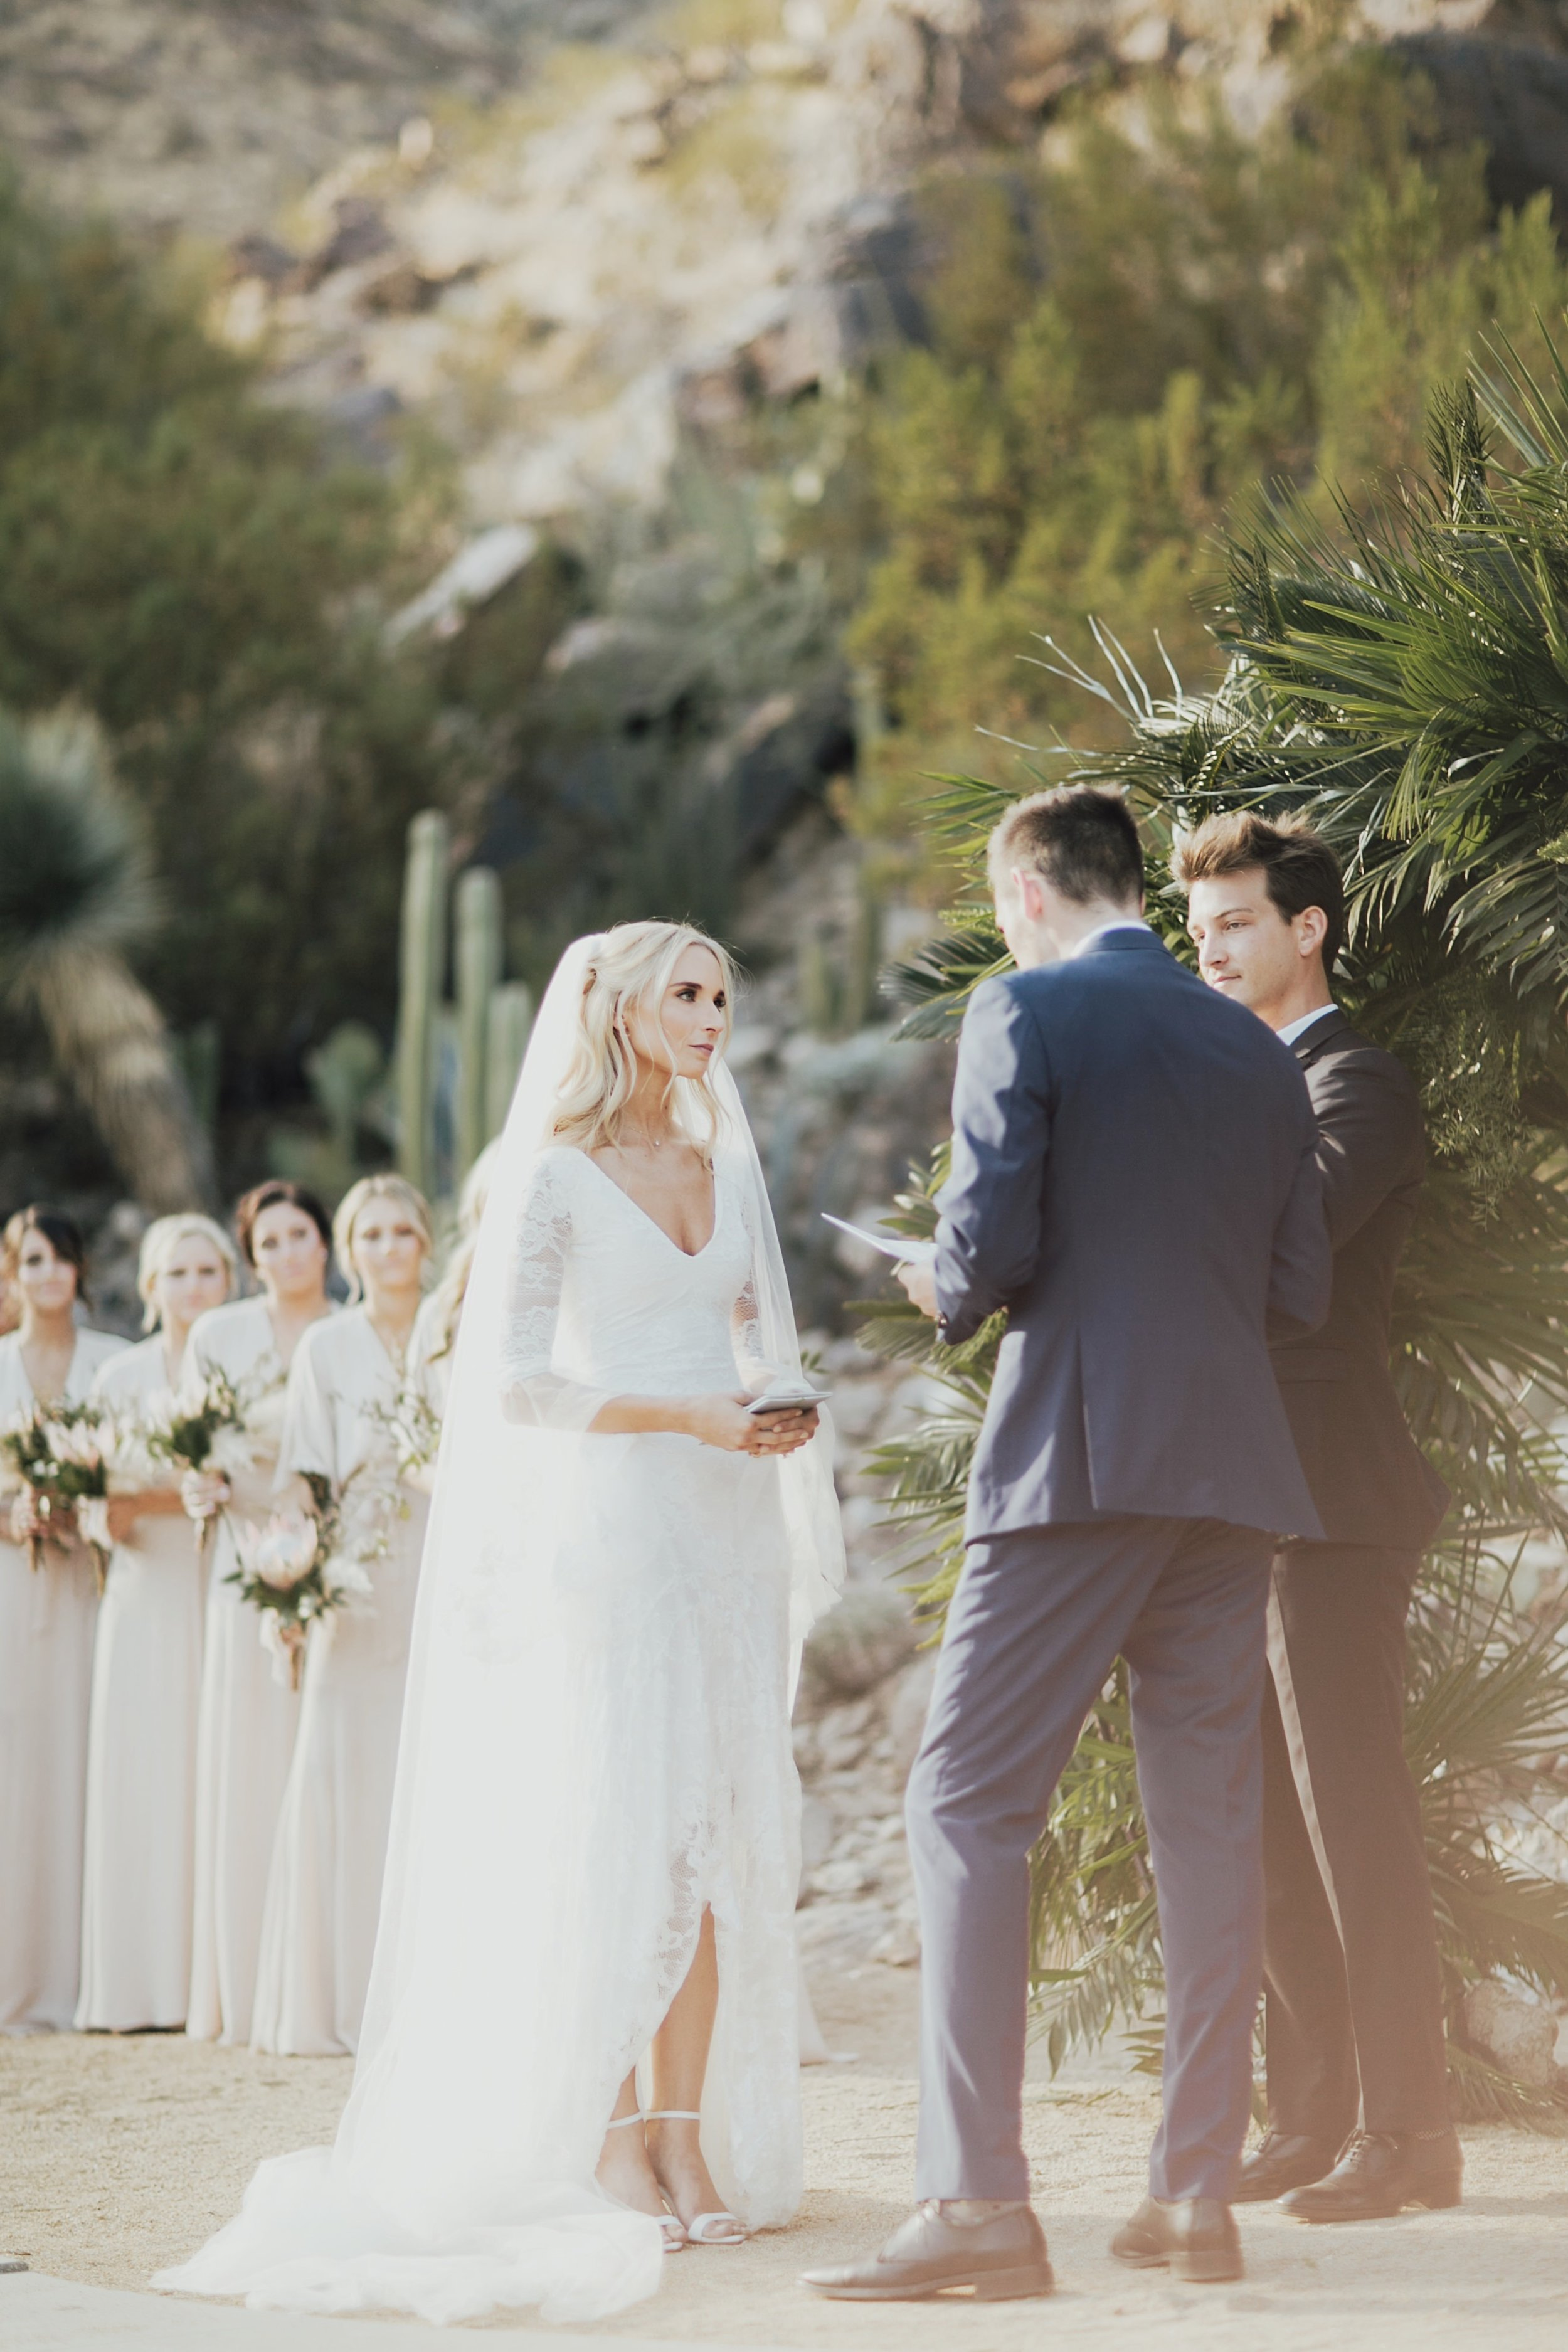 dreamy light during the ceremony in palm springs